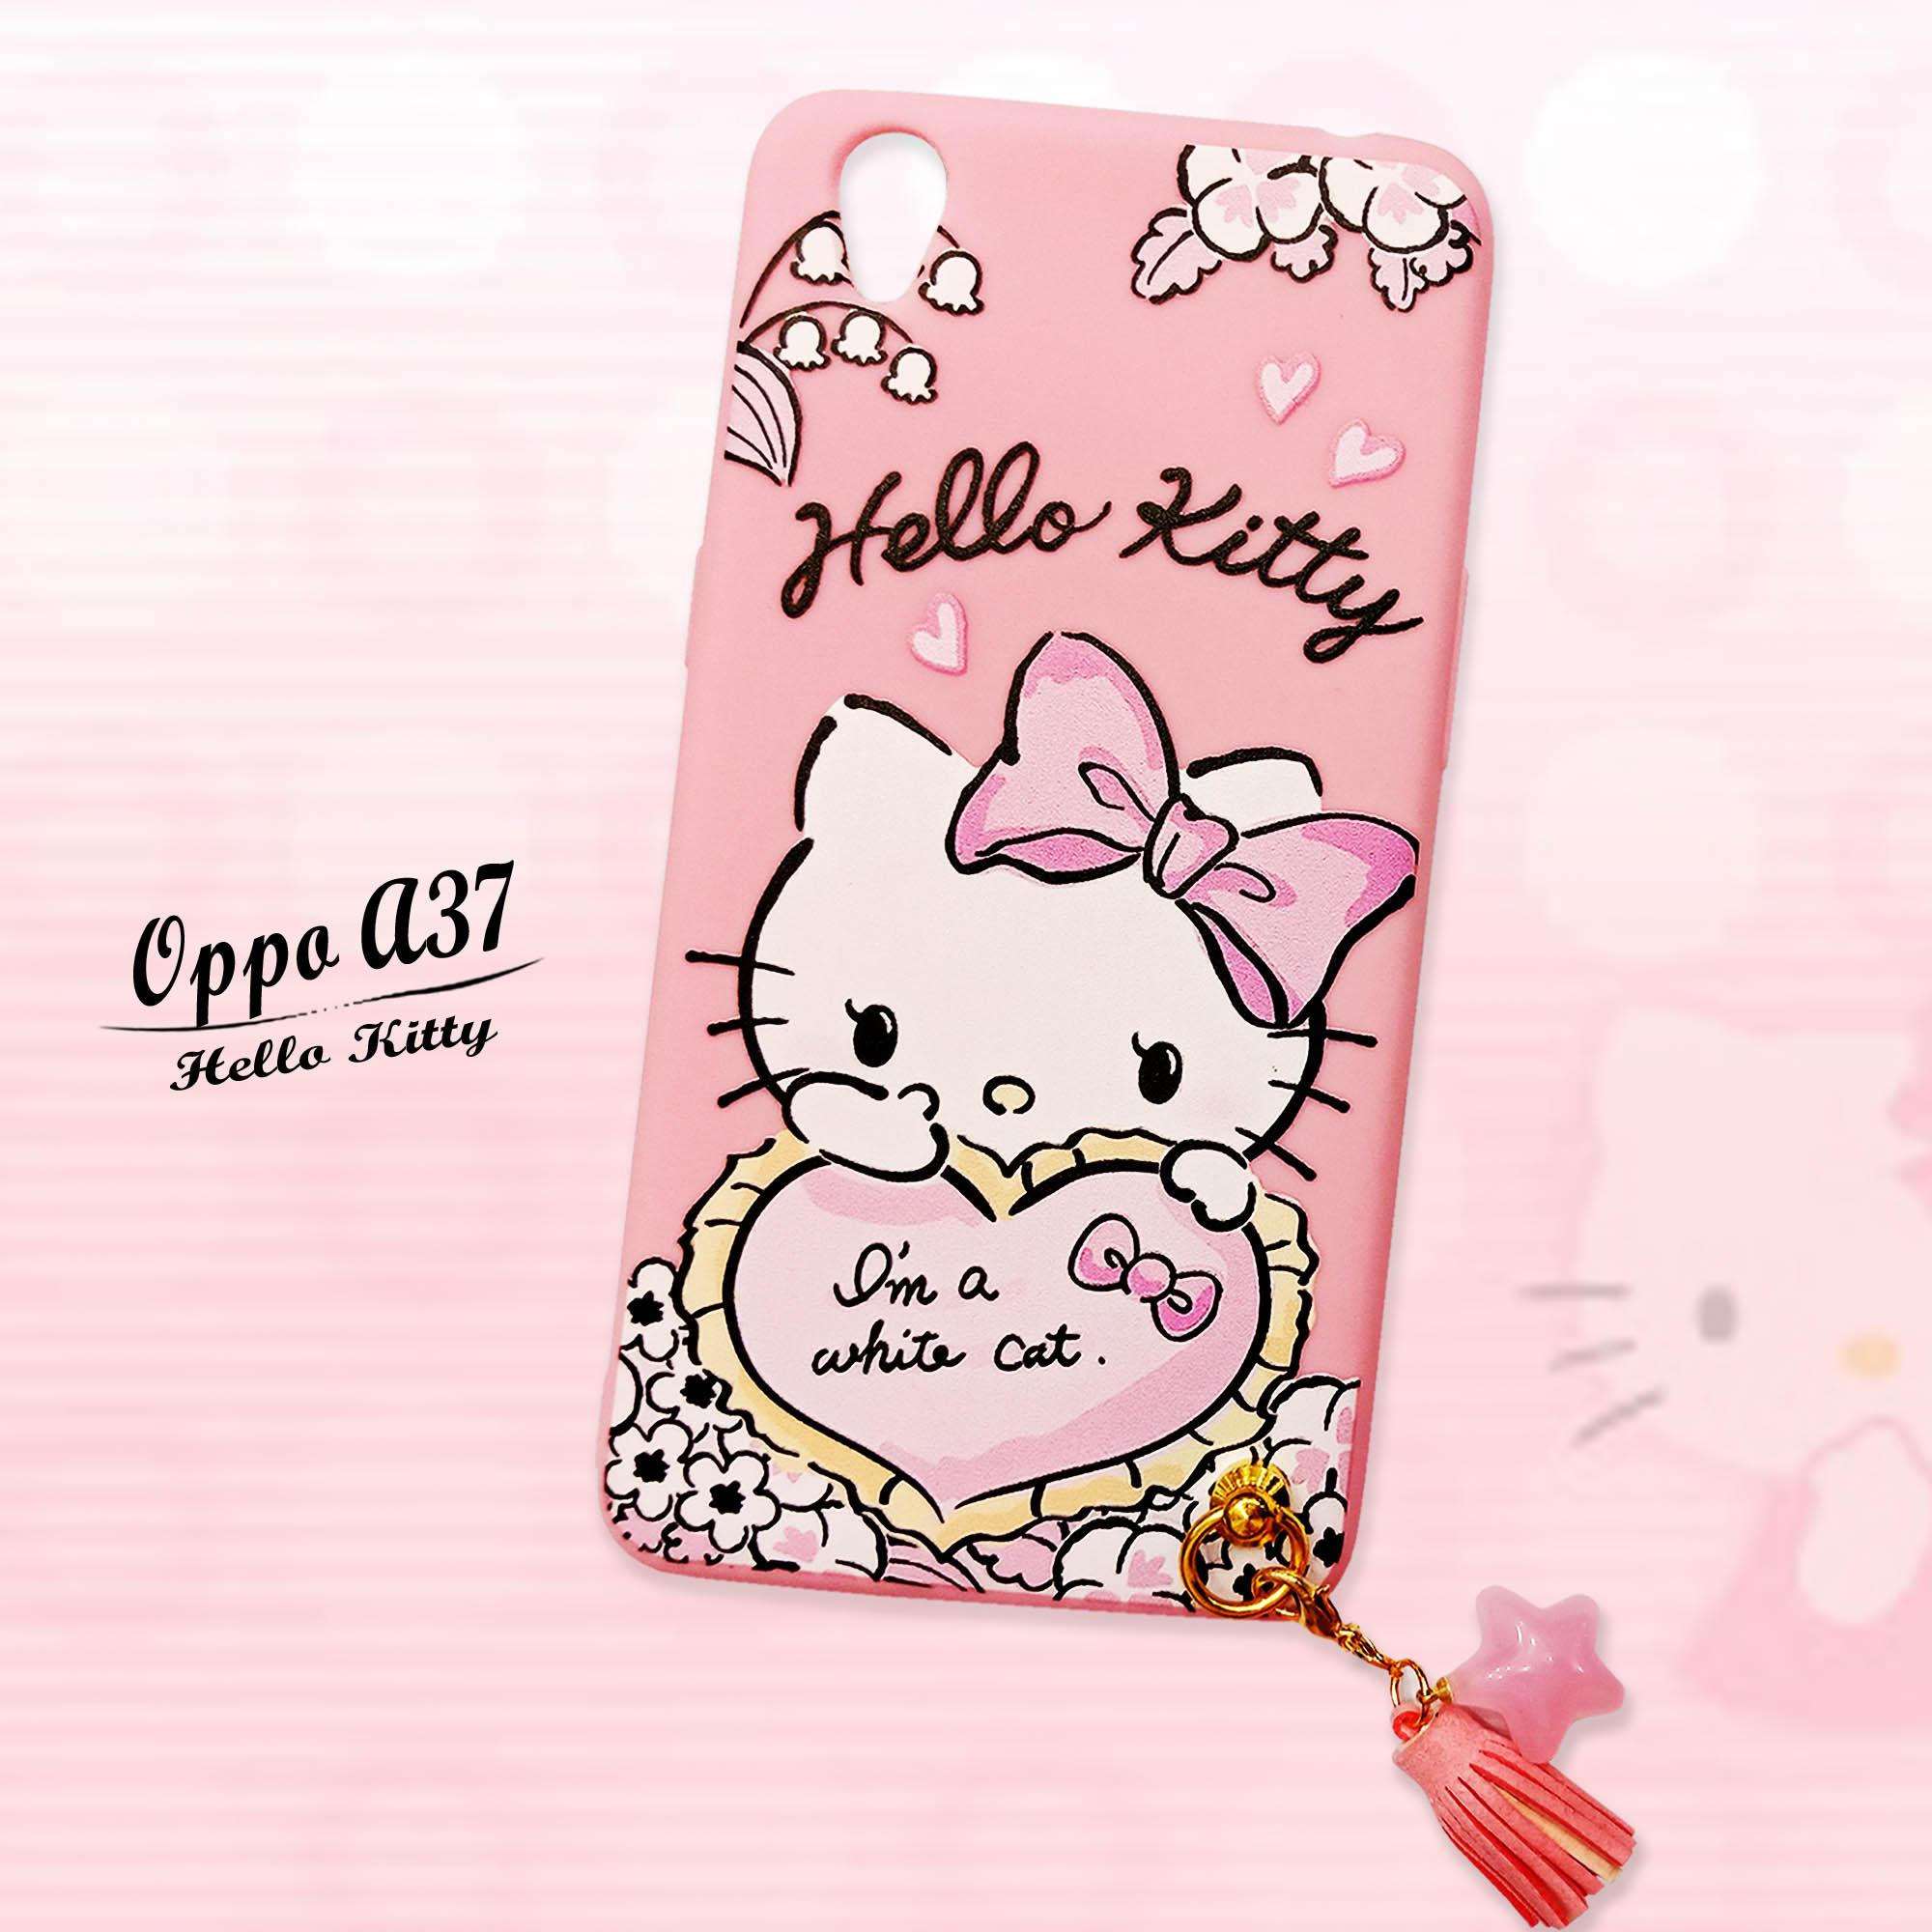 Marintri Case Oppo A37 New Hello Kitty Melody